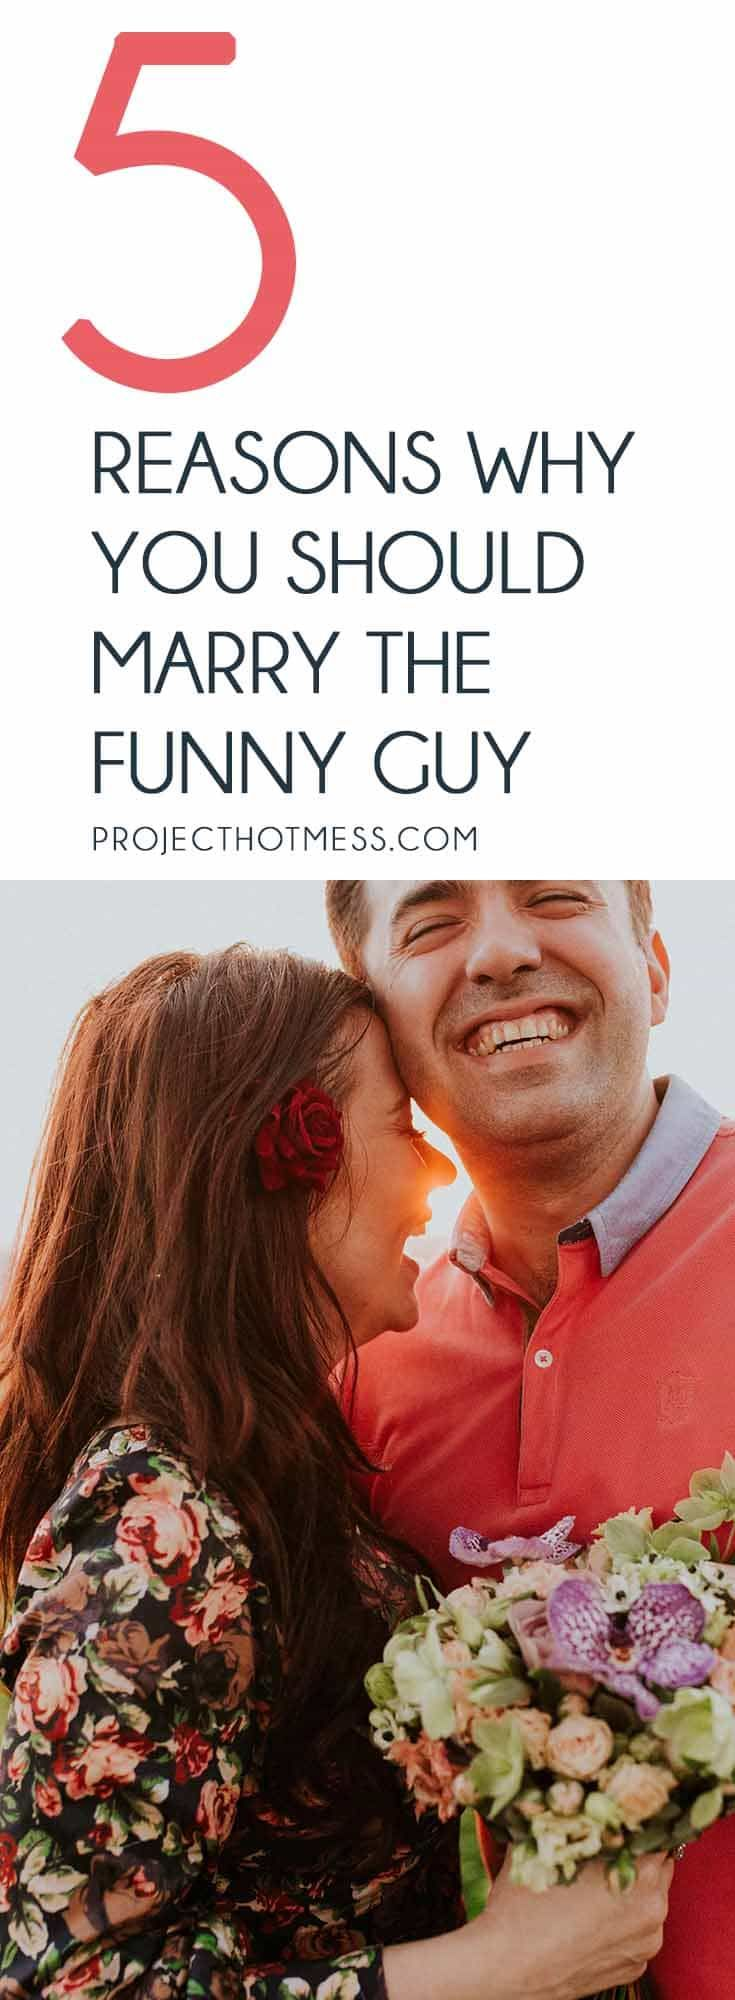 Our mothers may argue that we need to marry the rich guy or the kind guy, but if you want a lasting marriage, you should definitely marry the funny guy.    Relationships | Marriage | Partner | Marriage Advice | Marriage Goals | In Love | Love | Marriage Problems | Spice Up Your Marriage | Marriage Ideas | Happy Marriage | Relationship Goals | Relationship Advice | Relationship Tips |  via @project_hotmess